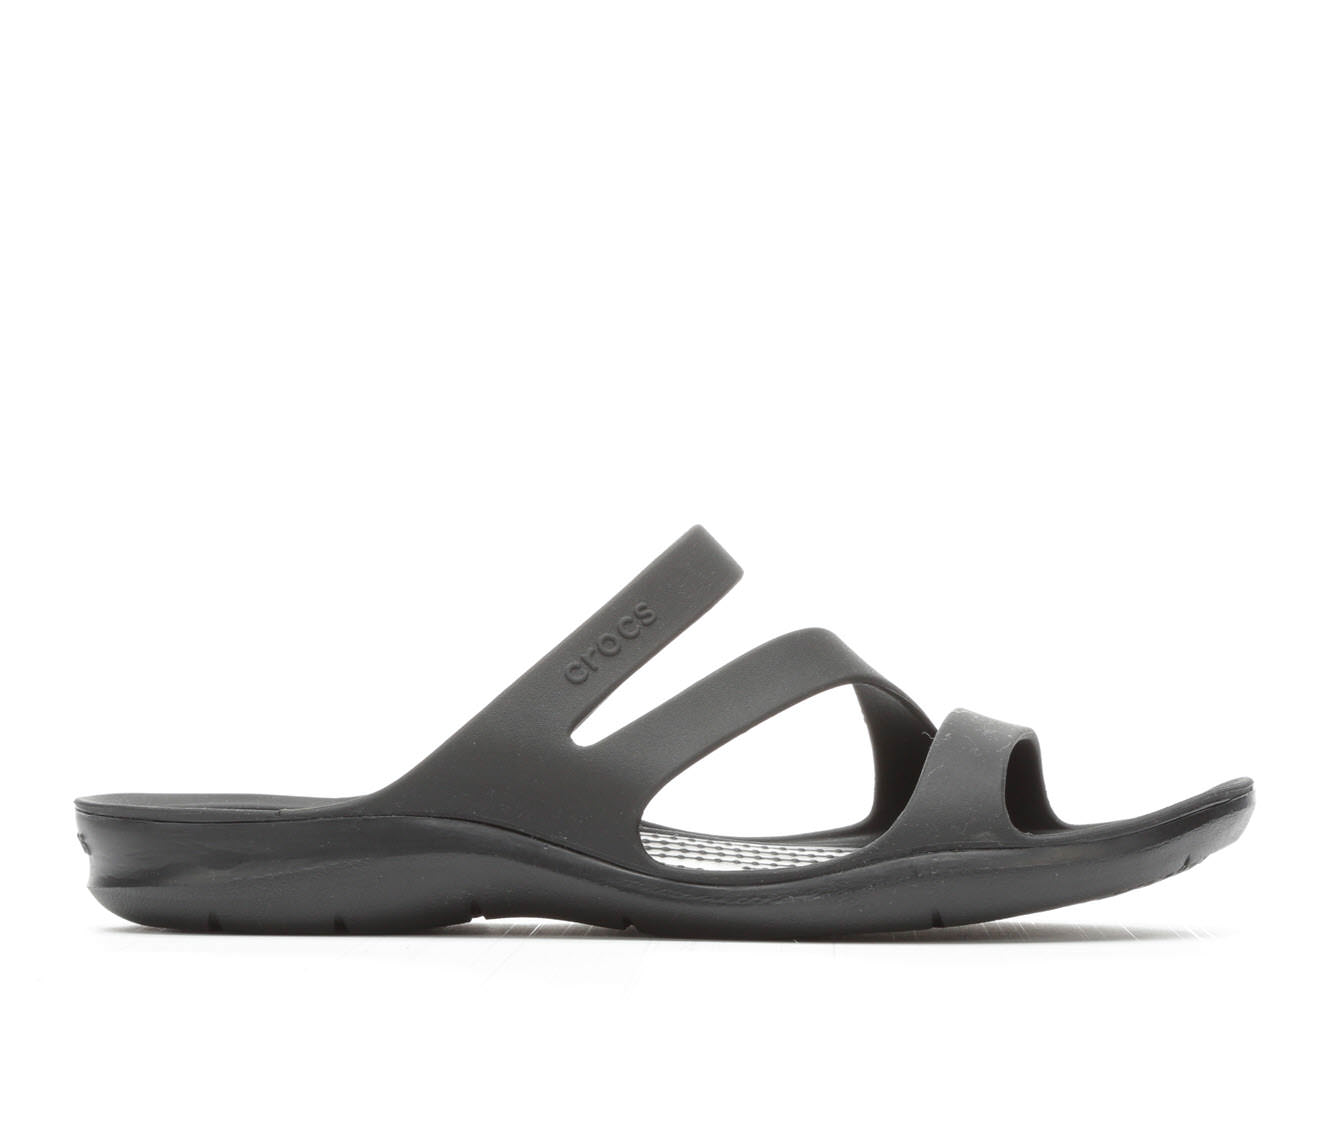 Women's Crocs Swiftwater Sandal W Sandals (Black)